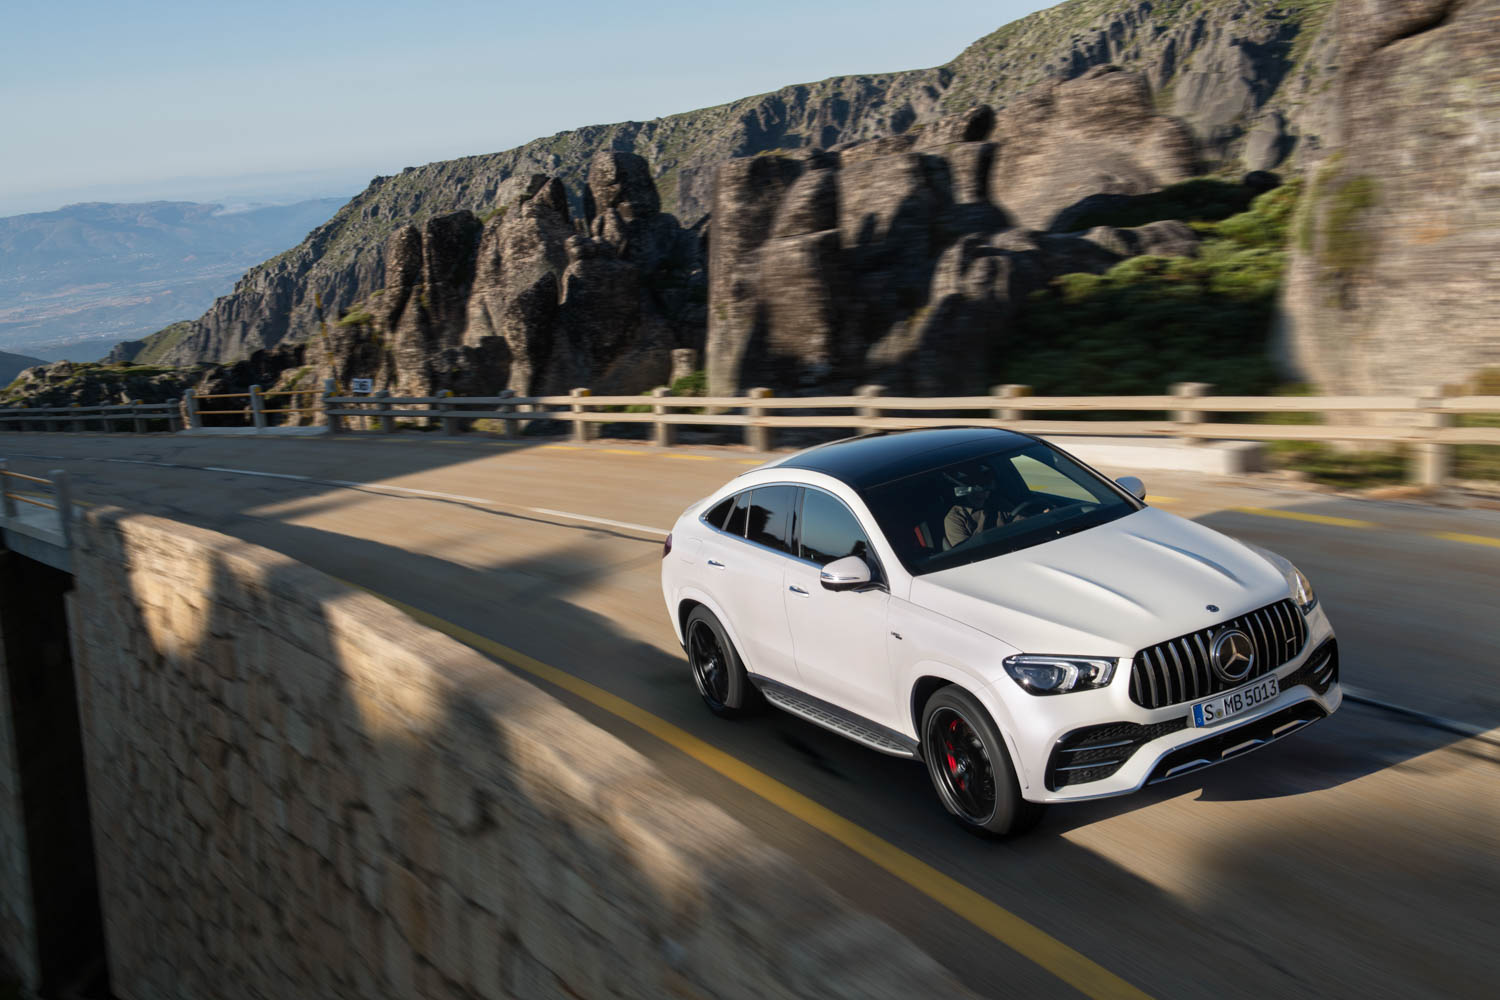 2021 Mercedes-AMG GLE 53 Coupe driving